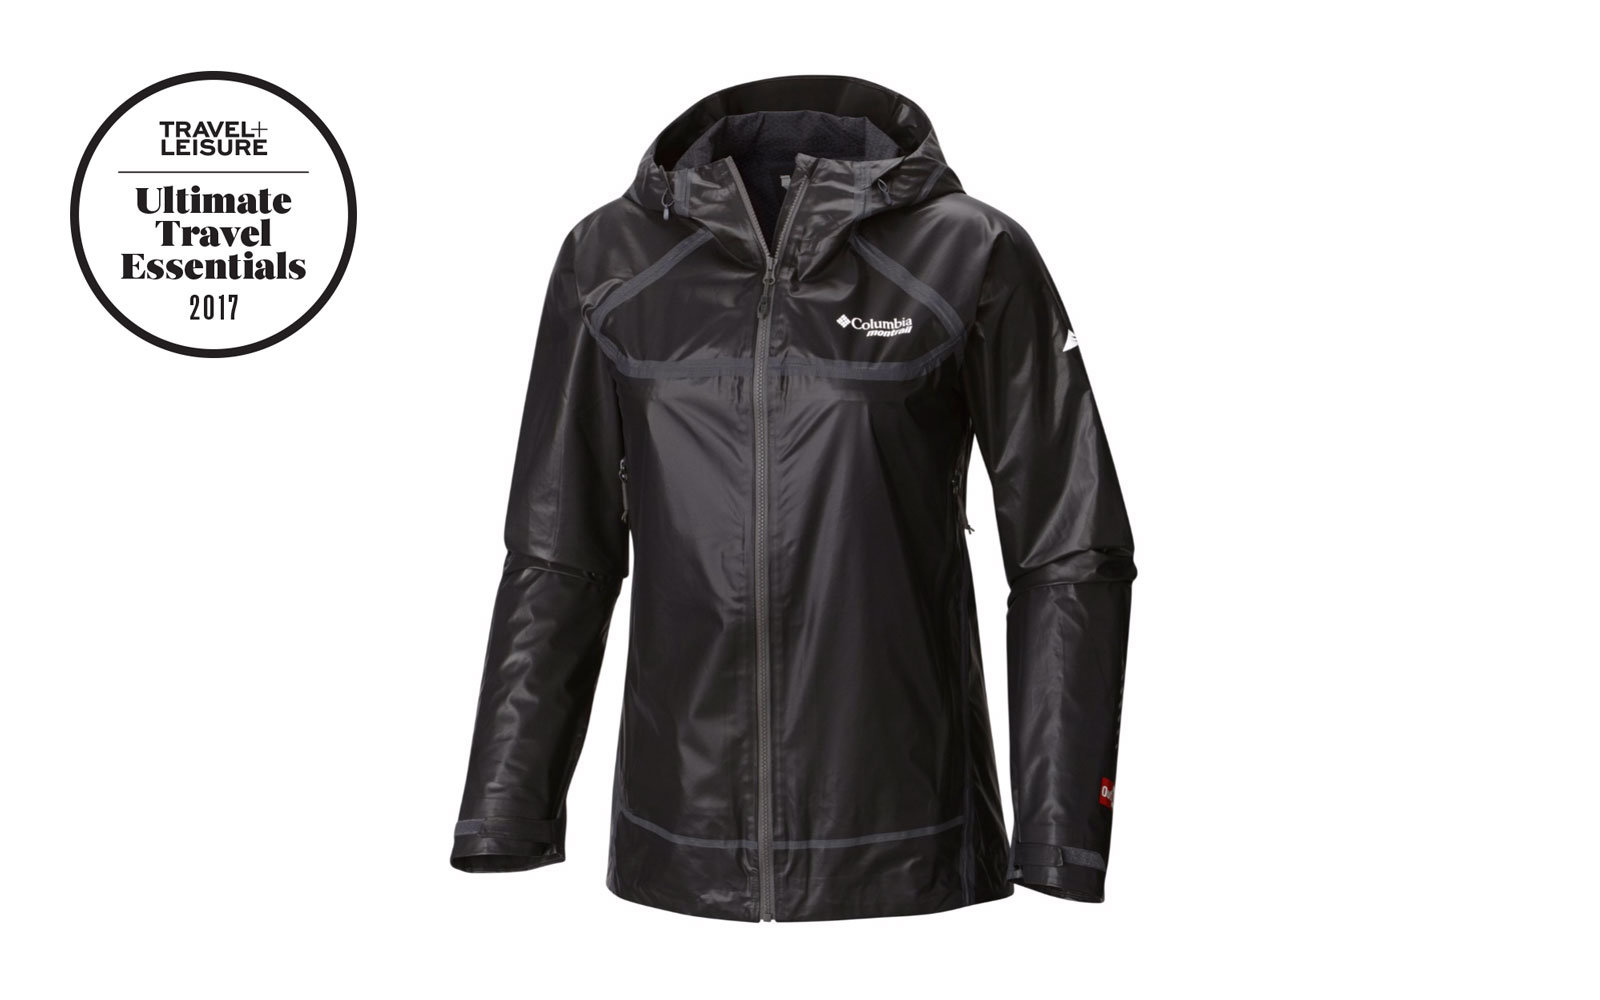 The 10 Best Travel Jackets Travel Leisure